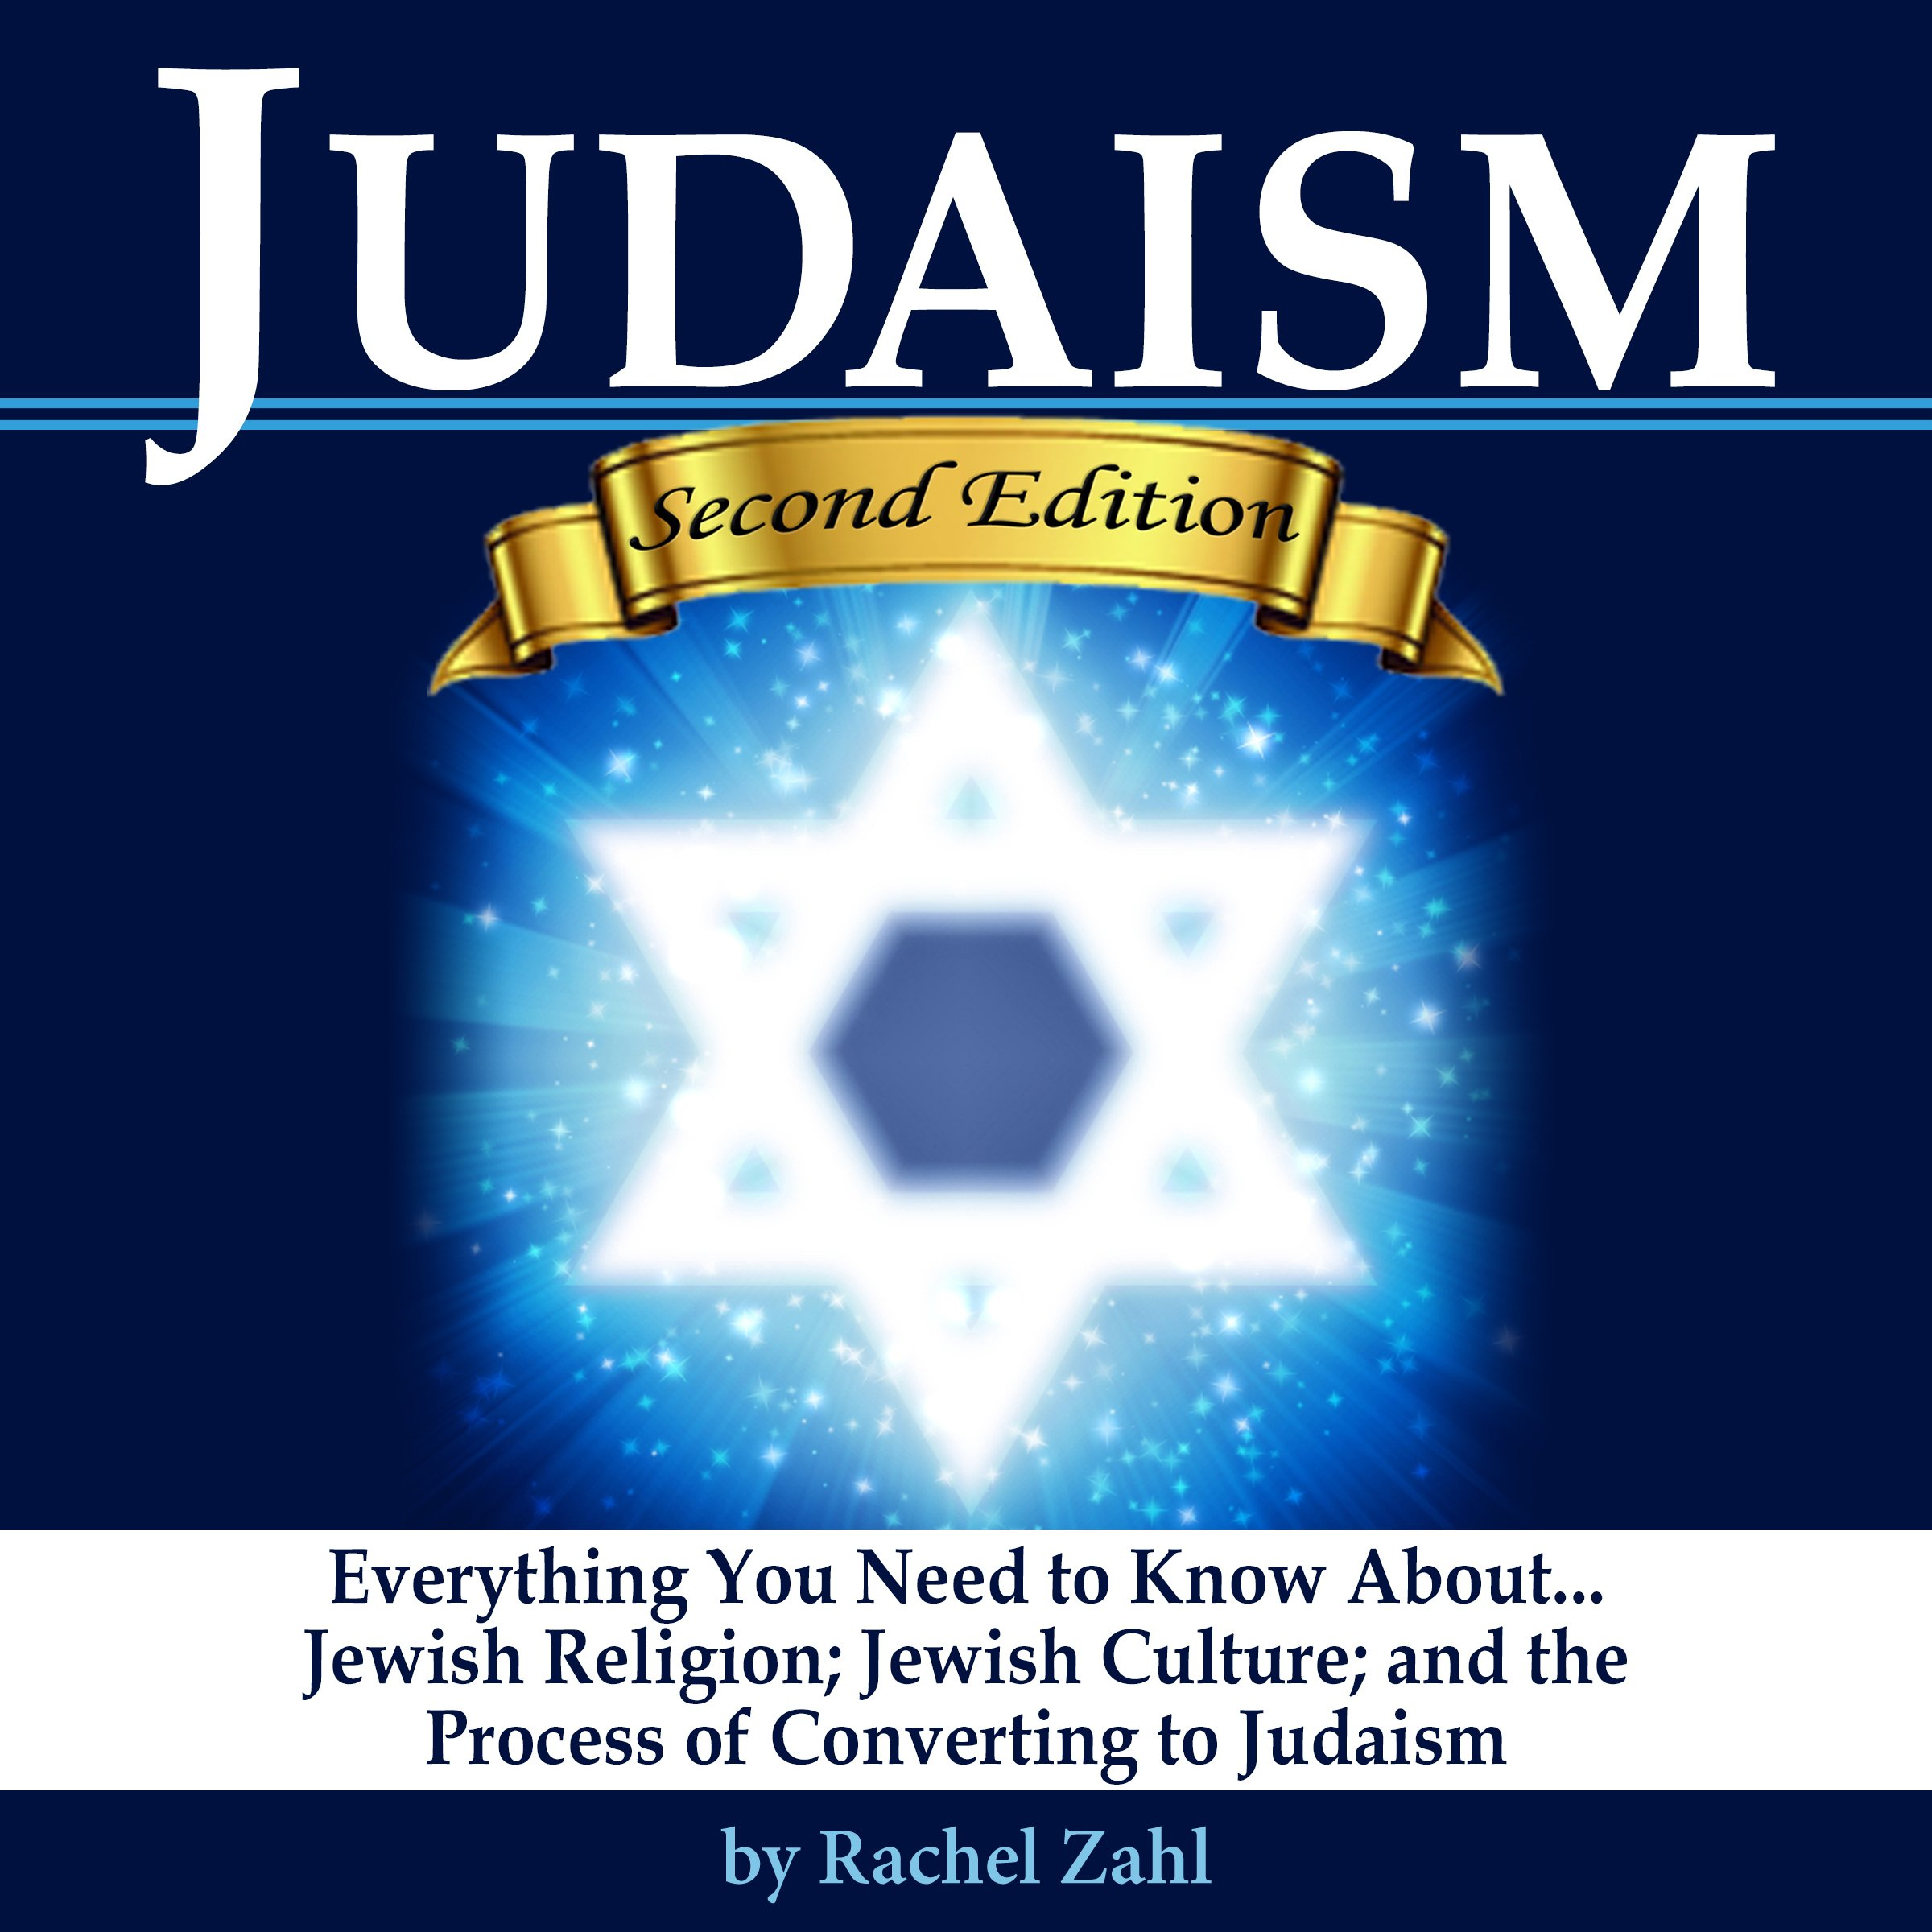 Judaism  Everything You Need To Know About Jewish Religion Jewish Culture And The Process Of Converting To Judaism   How To Become A Jew